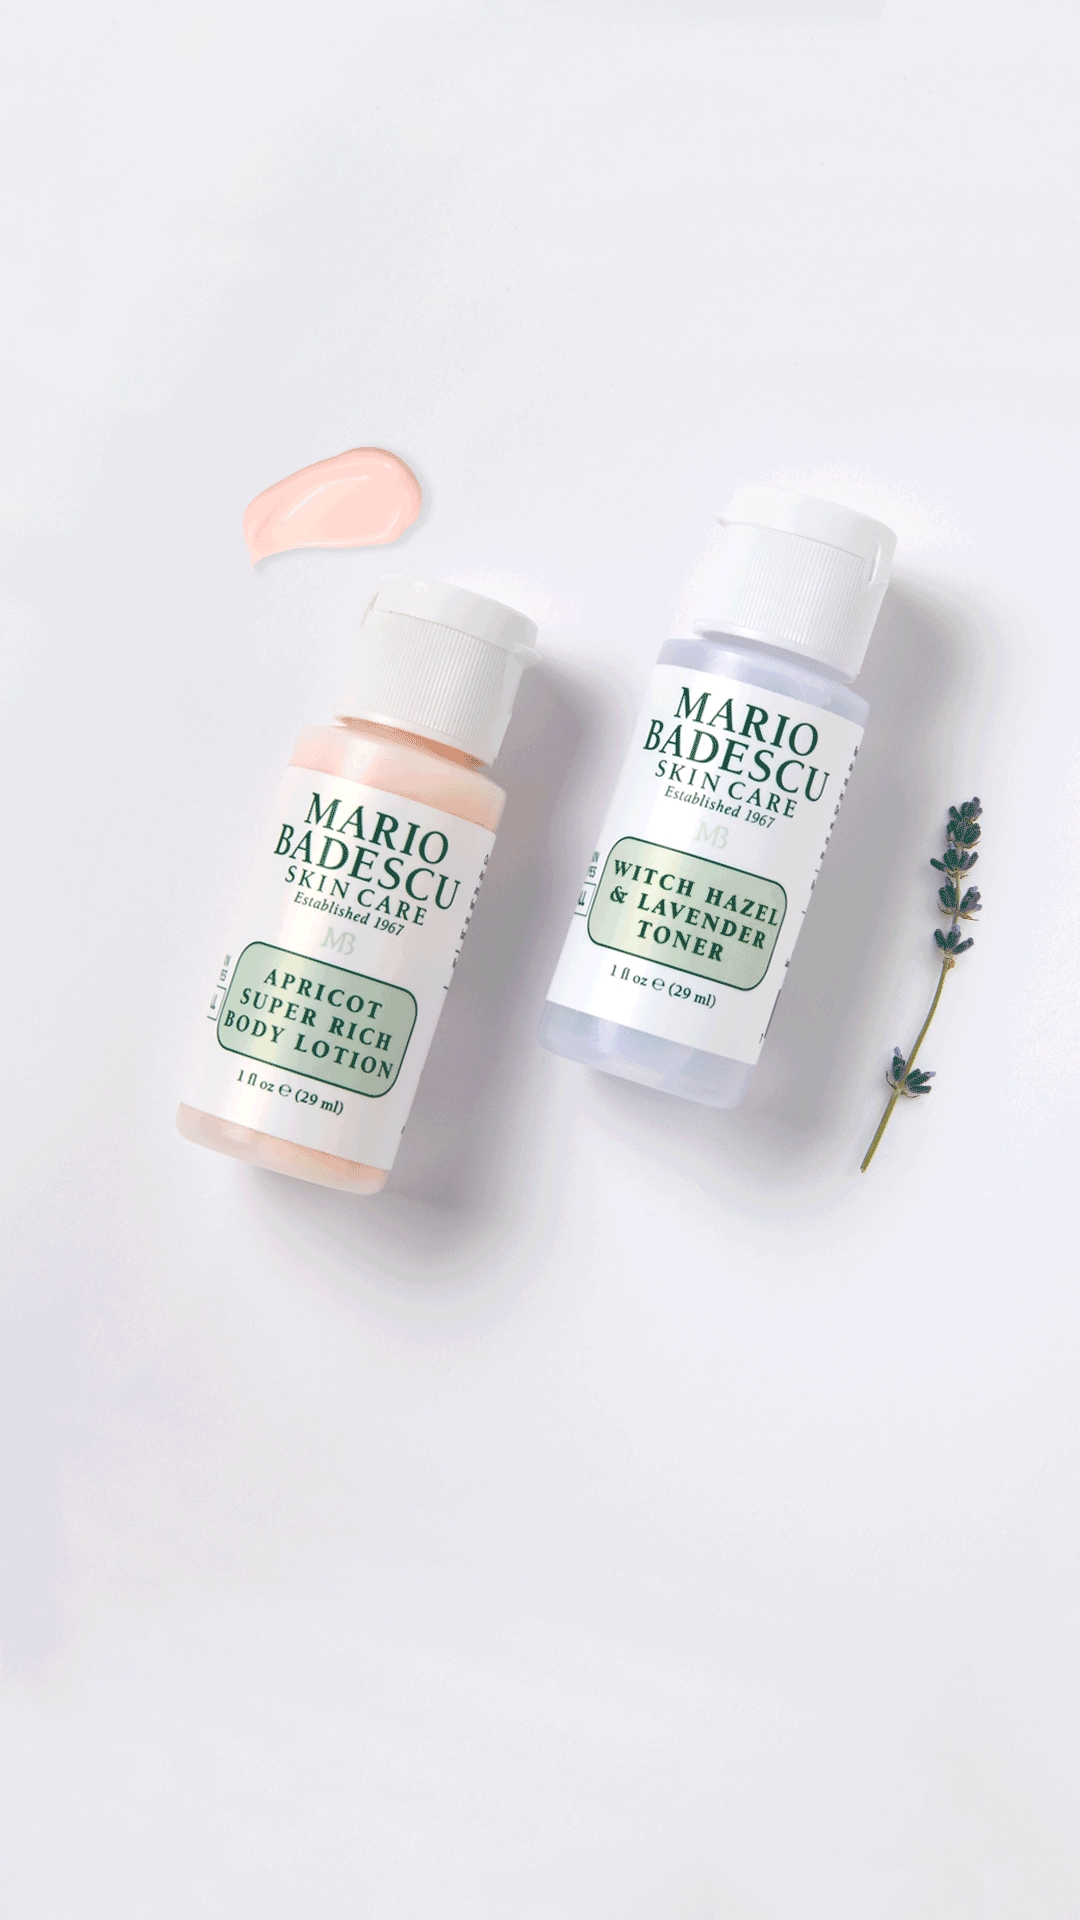 Everyone Loves A Mini Especially With They Come In Twos Receive This Travel Friendly Duo When You S Video Skin Care Toner Products Skin Care Mario Badescu Skin Care